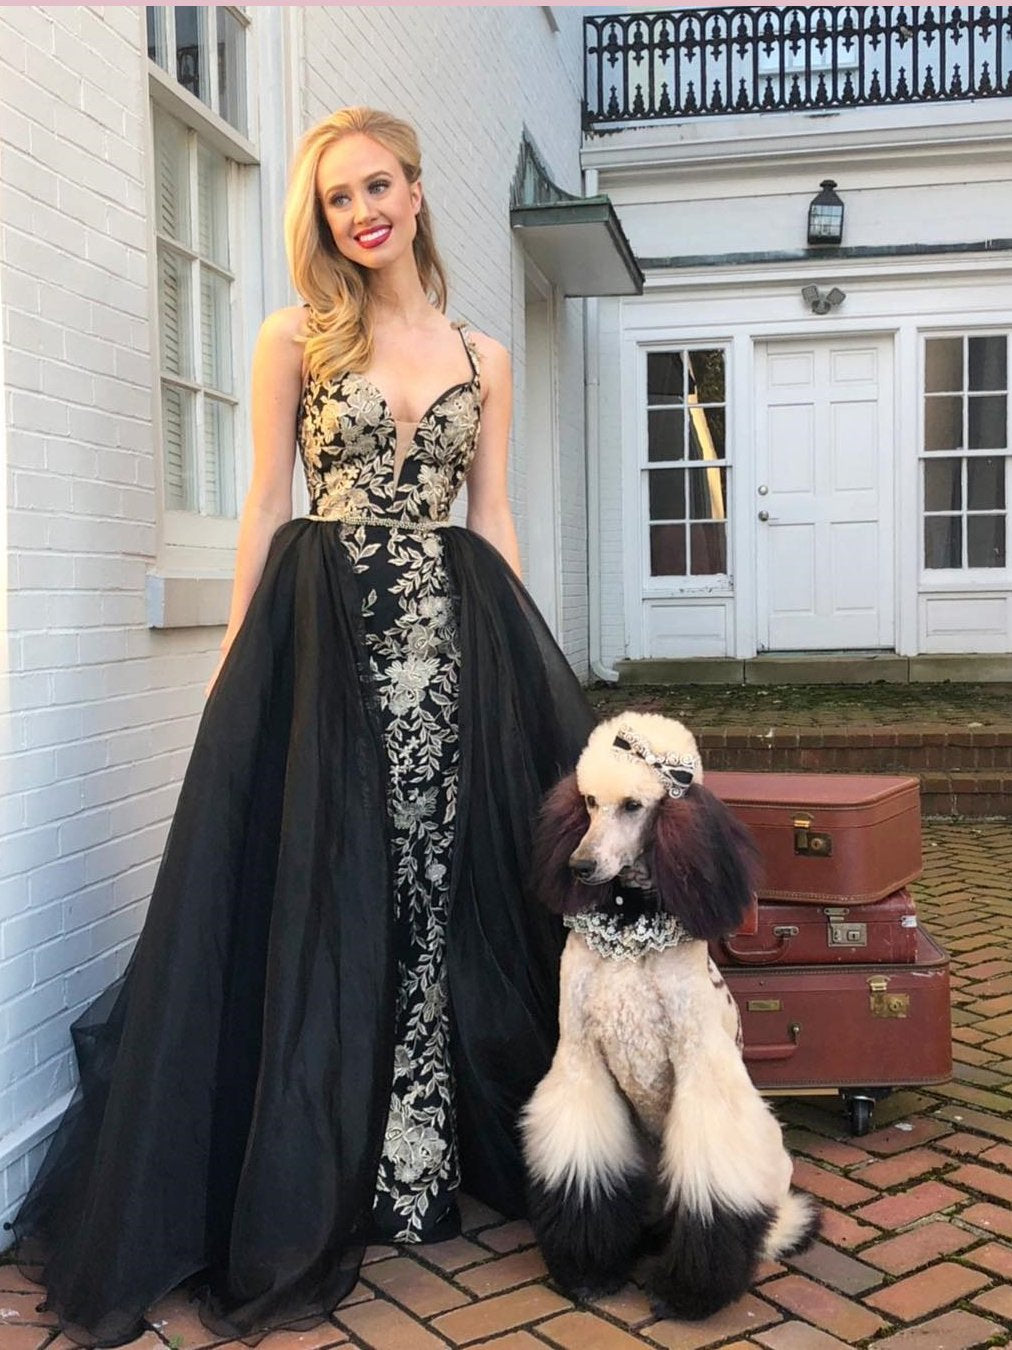 Gold and Black Long Prom Dresses With Applique Beautiful Evening Dress Celebrity Long Formal Gowns JKM3023|Annapromdress